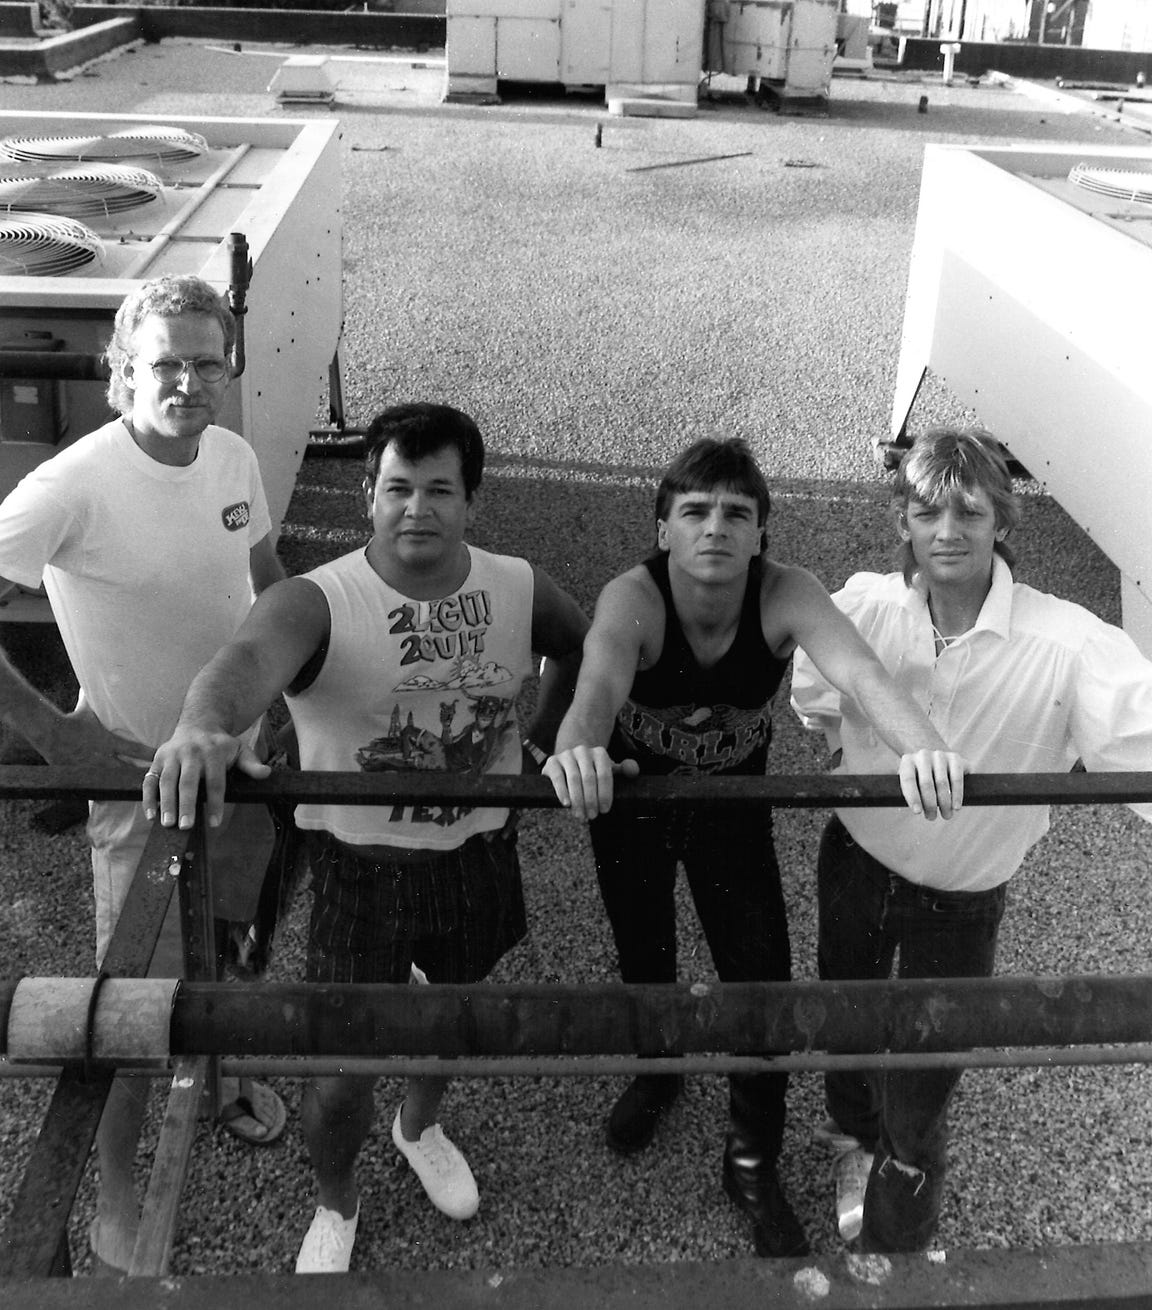 DRB, from left, Steve Couch, Cecil Tijerina, Delbert McNeill and Doug Roysden, pose for a band photo atop the Reporter-News in the 1990s.